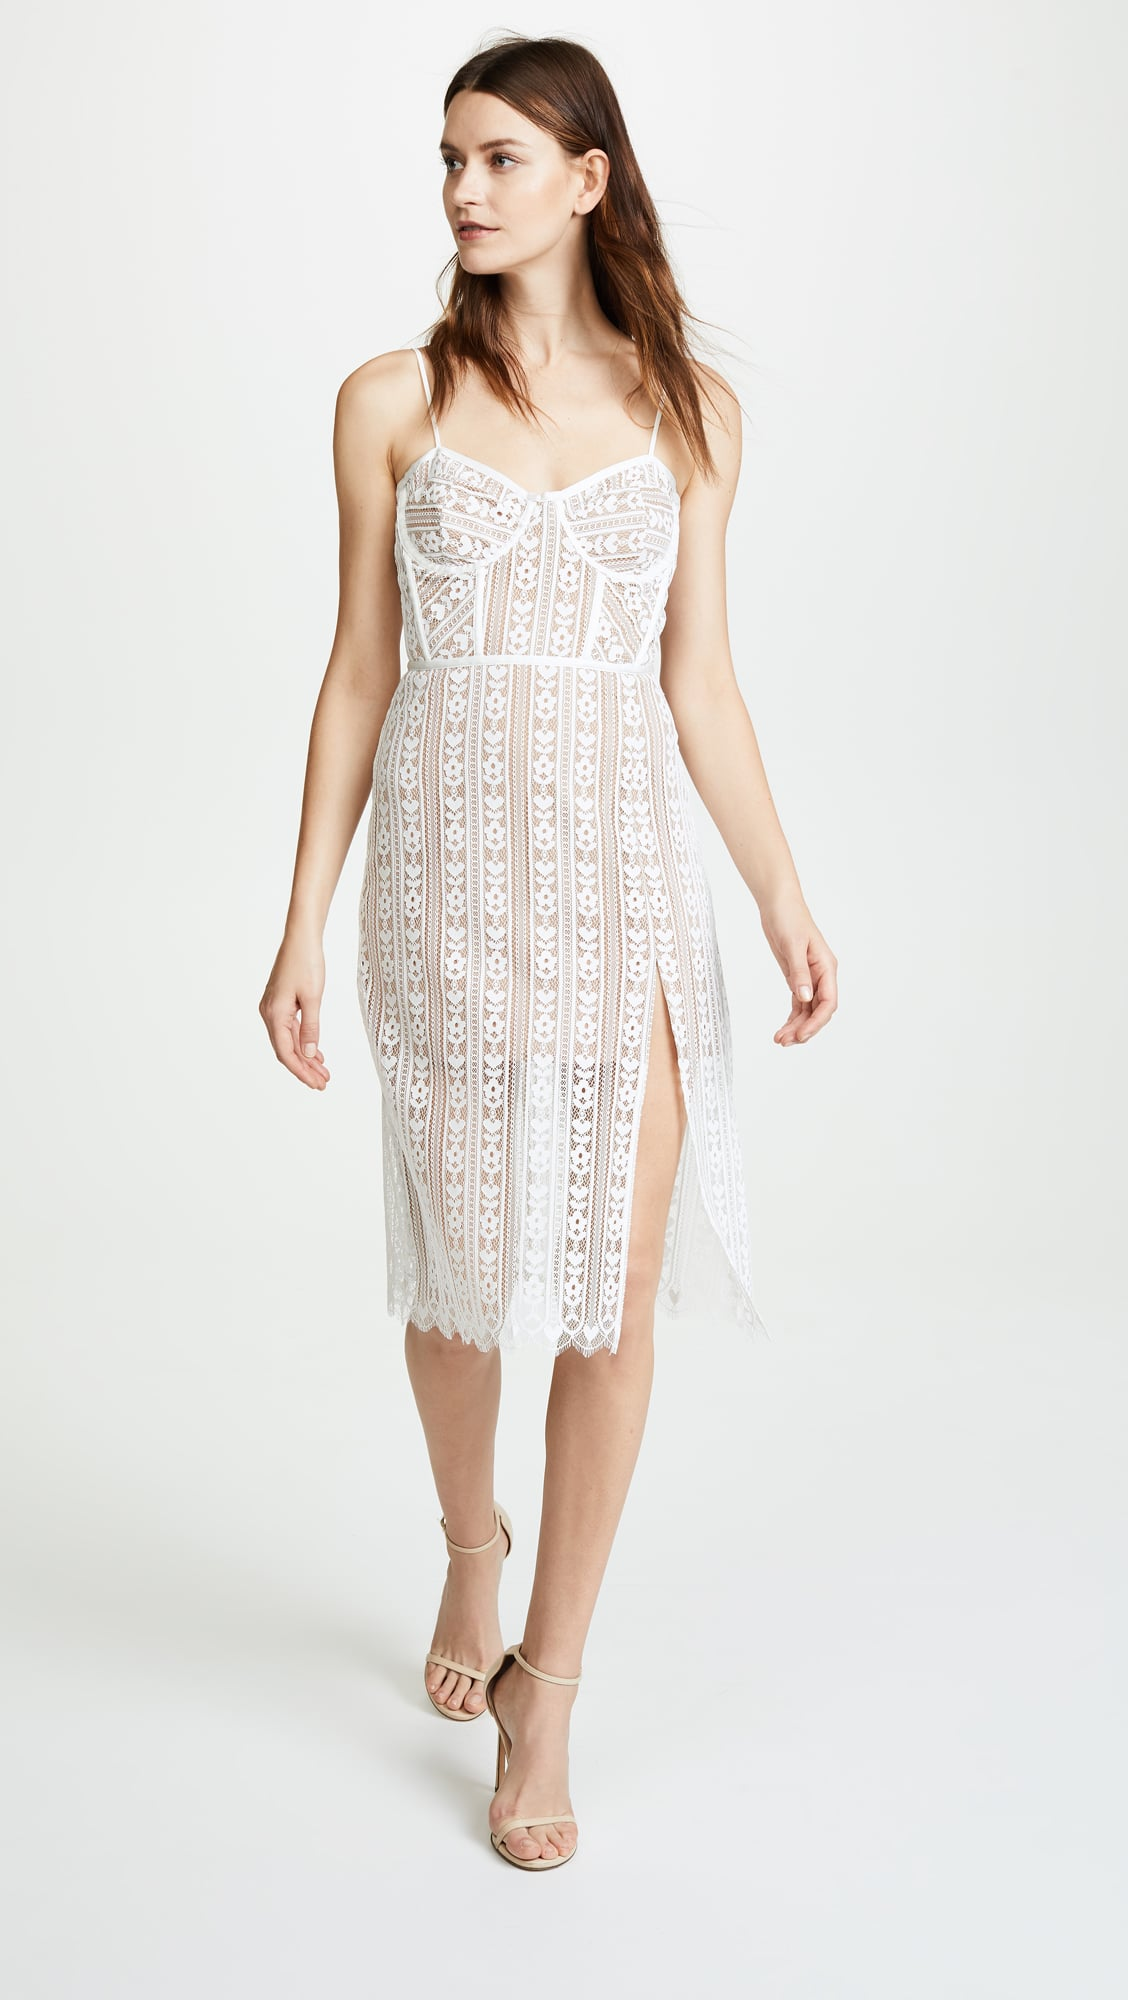 For Love Lemons Dakota Lace Dress Calling All Shoppers 94 Crazy Good Deals From The Best Labor Day Sales On The Internet Popsugar Fashion Photo 81